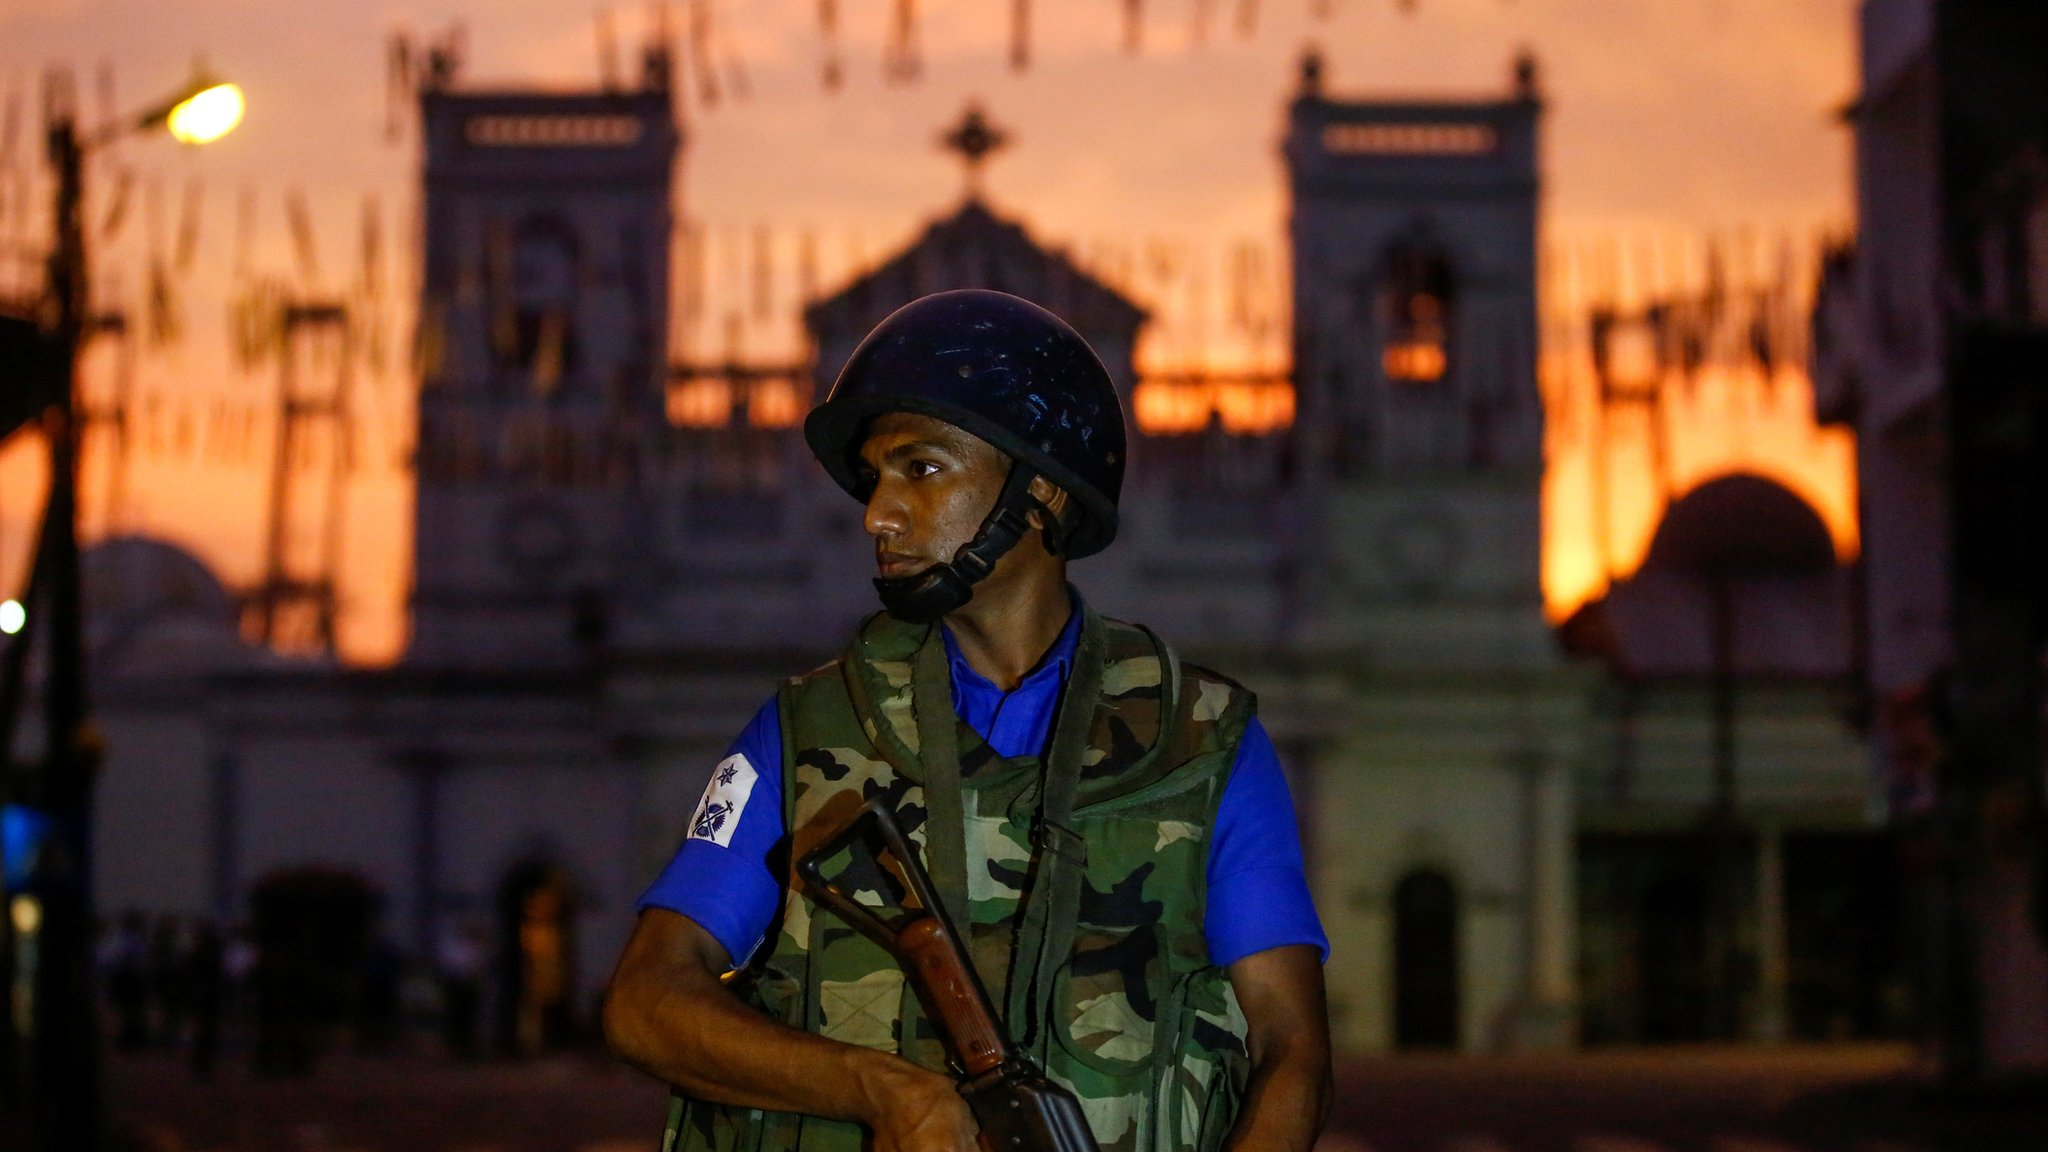 Sri Lanka bombings: PM Wickremesinghe says he was 'out of the loop'